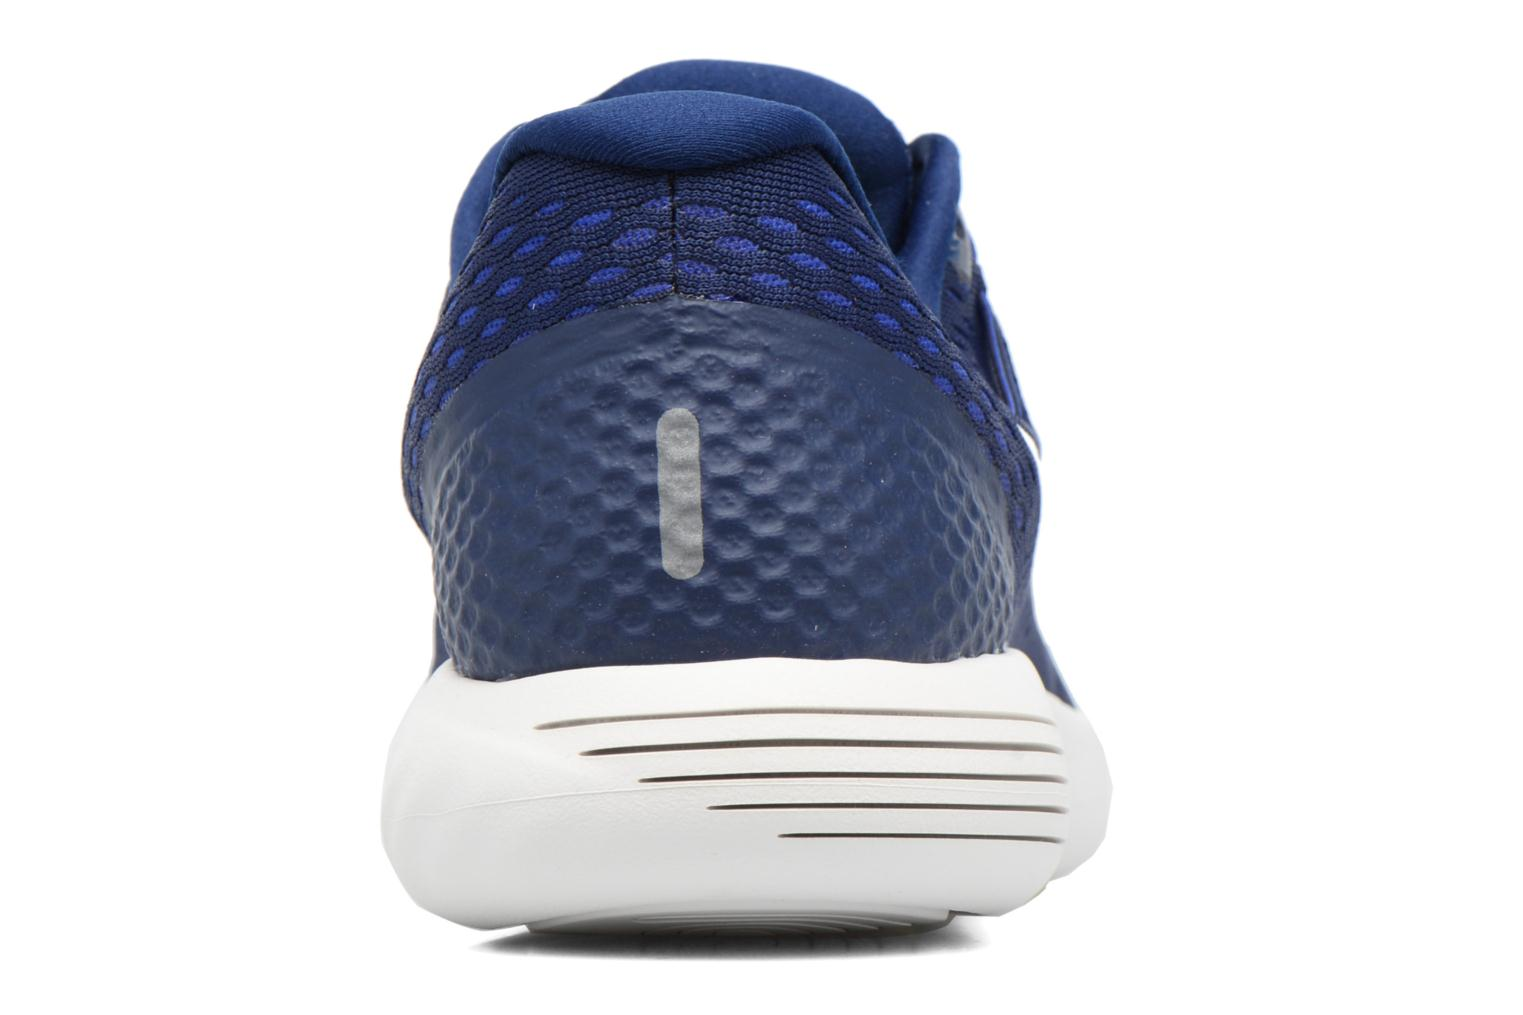 Nike Lunarglide 8 Binary Blue/Summit White-Black